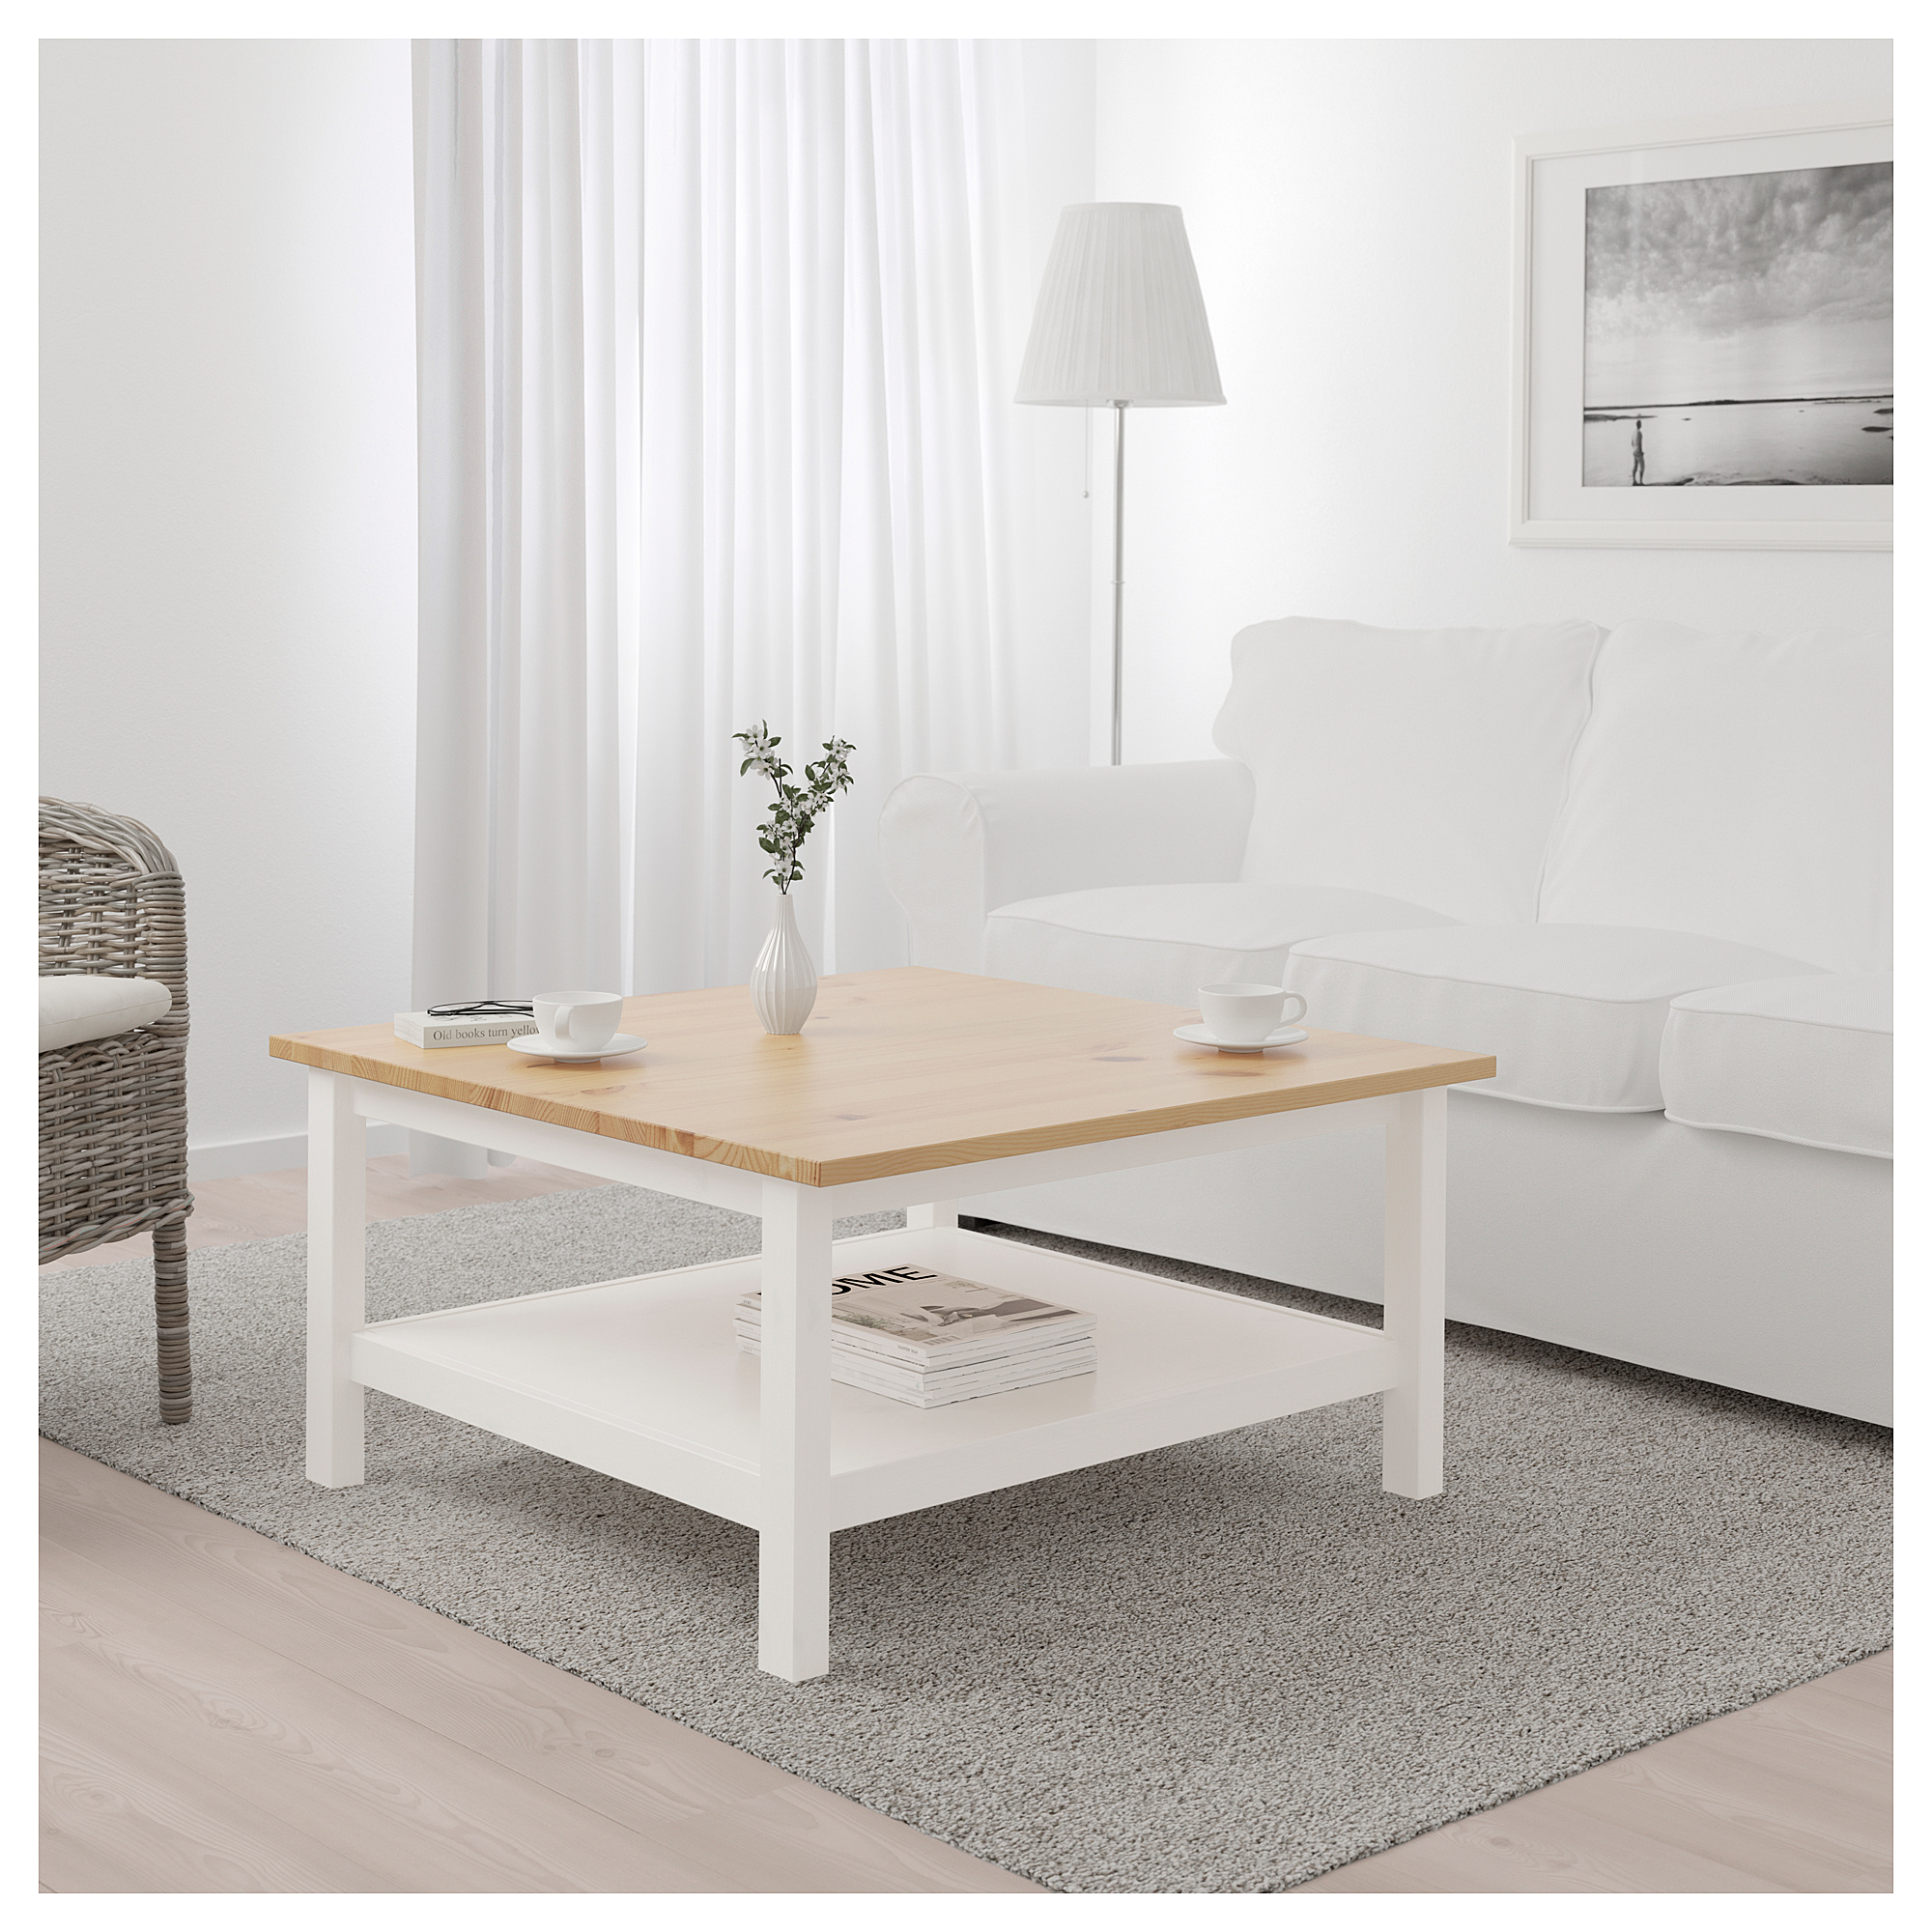 Table Basse Jardin Bois Ikea hemnes coffee table - white stain, light brown 35 3/8x35 3/8